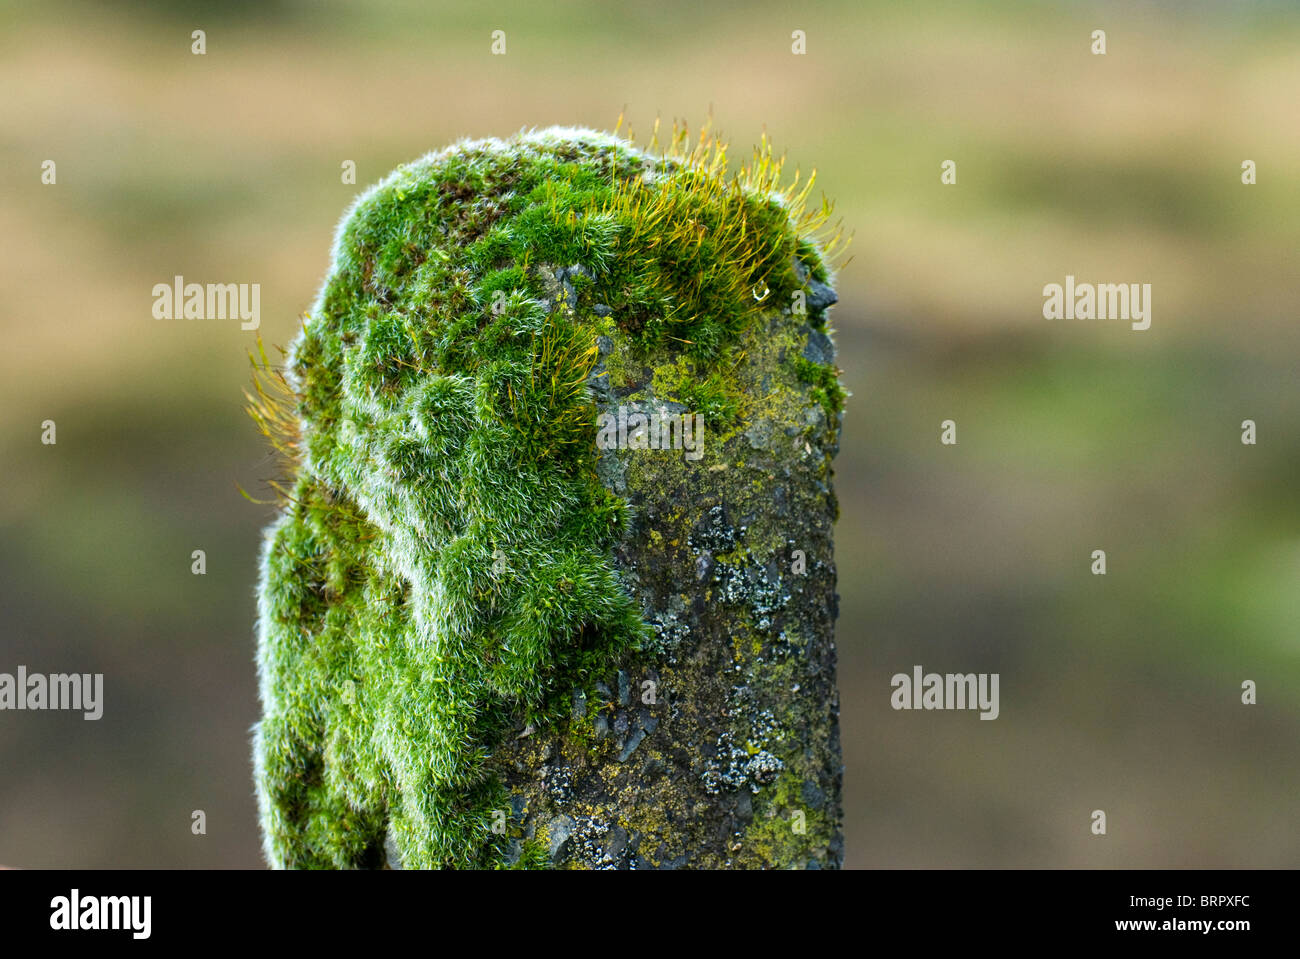 Moss growing on old concrete fence post on Dartmoor, Devon, UK Stock Photo